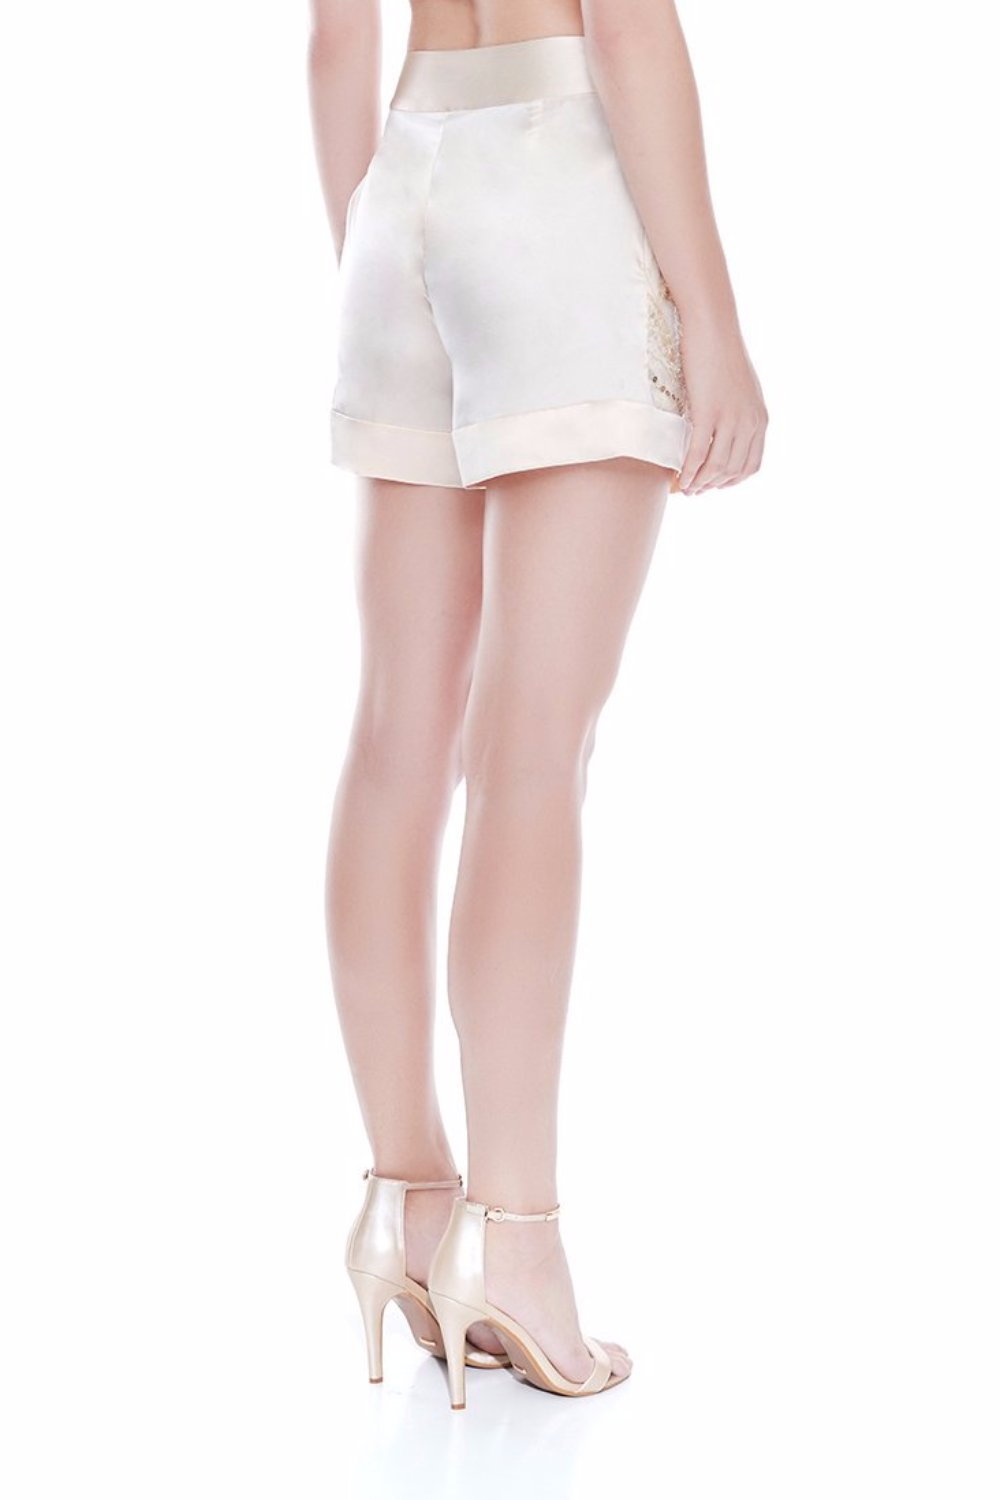 ANDREA Lace Satin Short - CHAMPAGNE | HAUS OF SONG